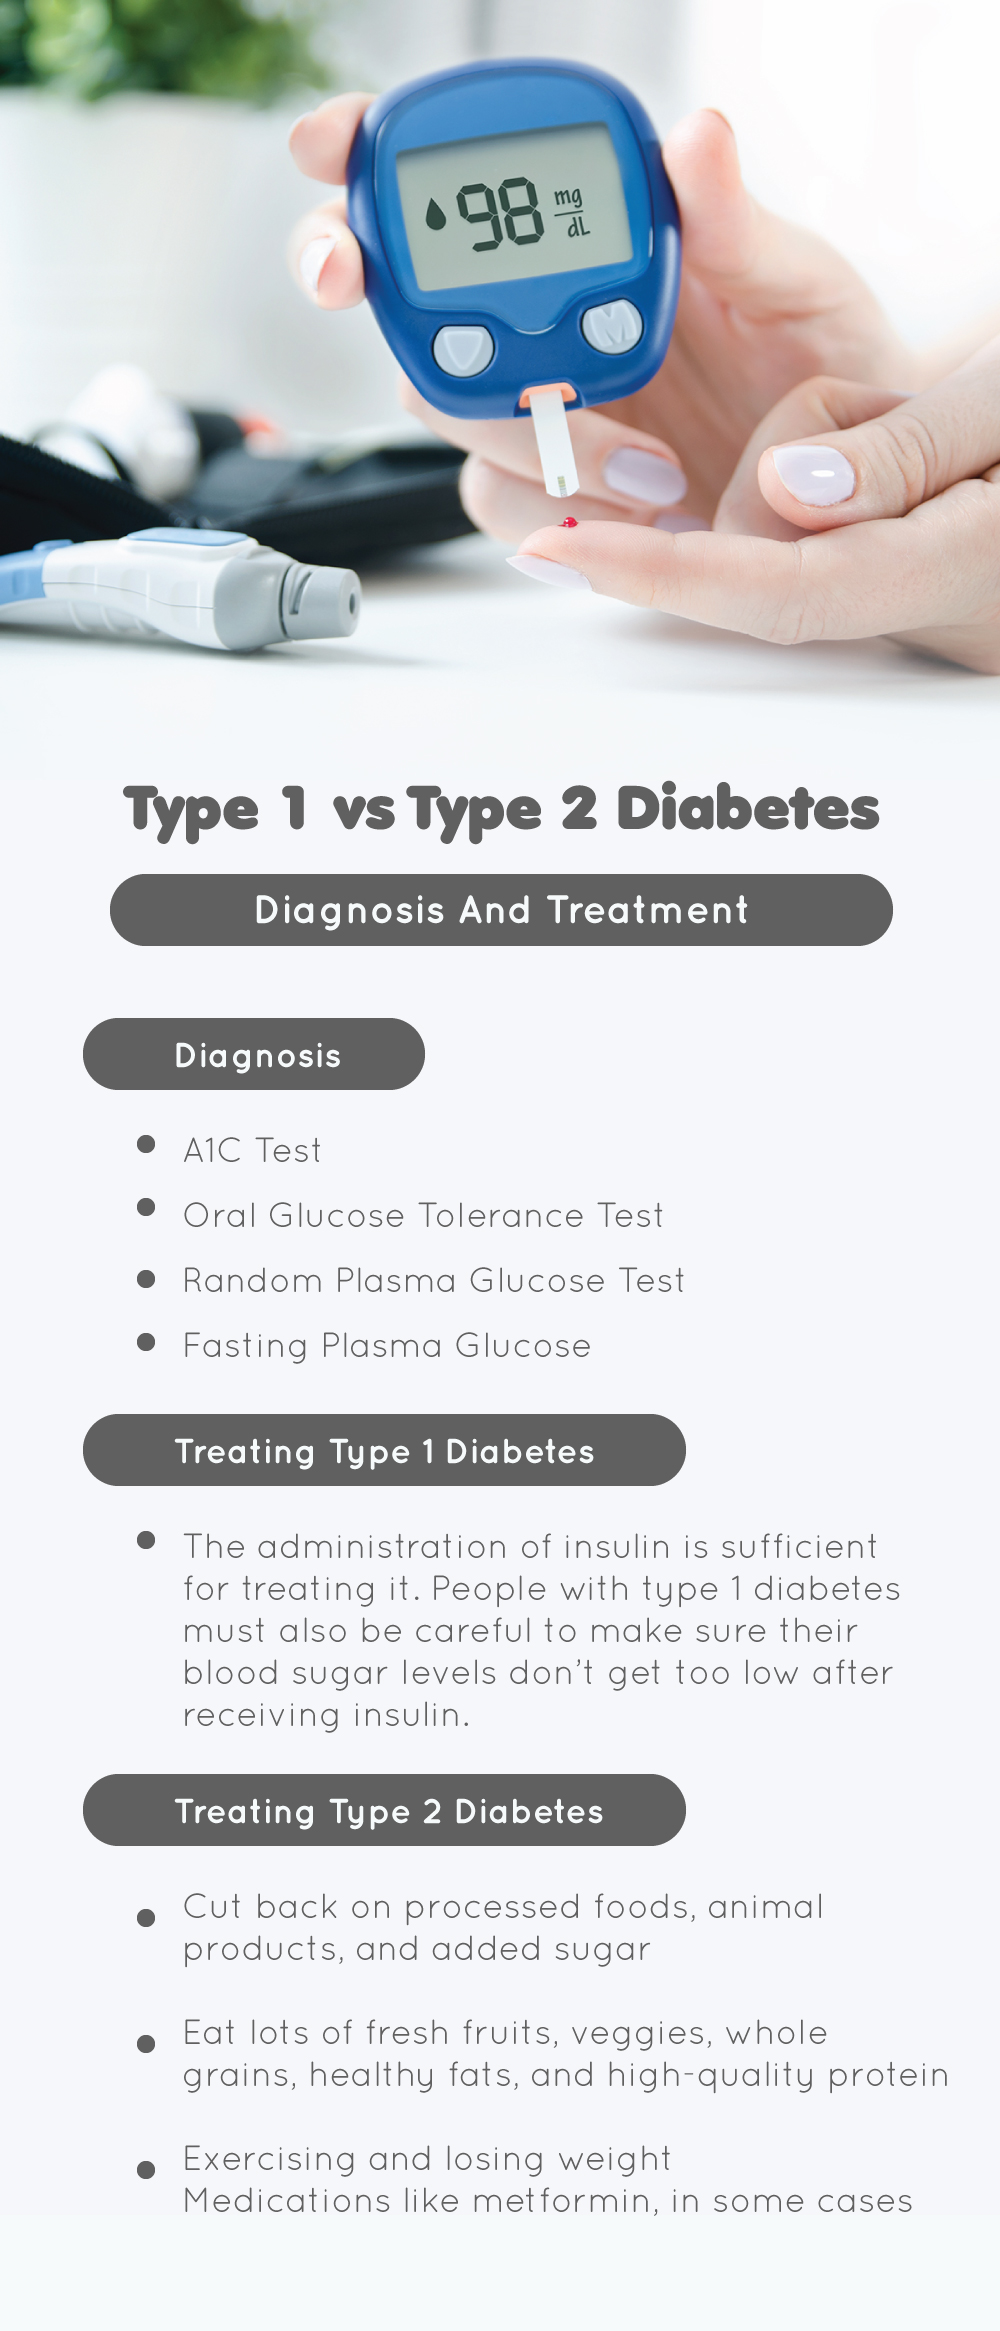 Type 1 and Type 2 Diabetes: Diagnosis And Treatment